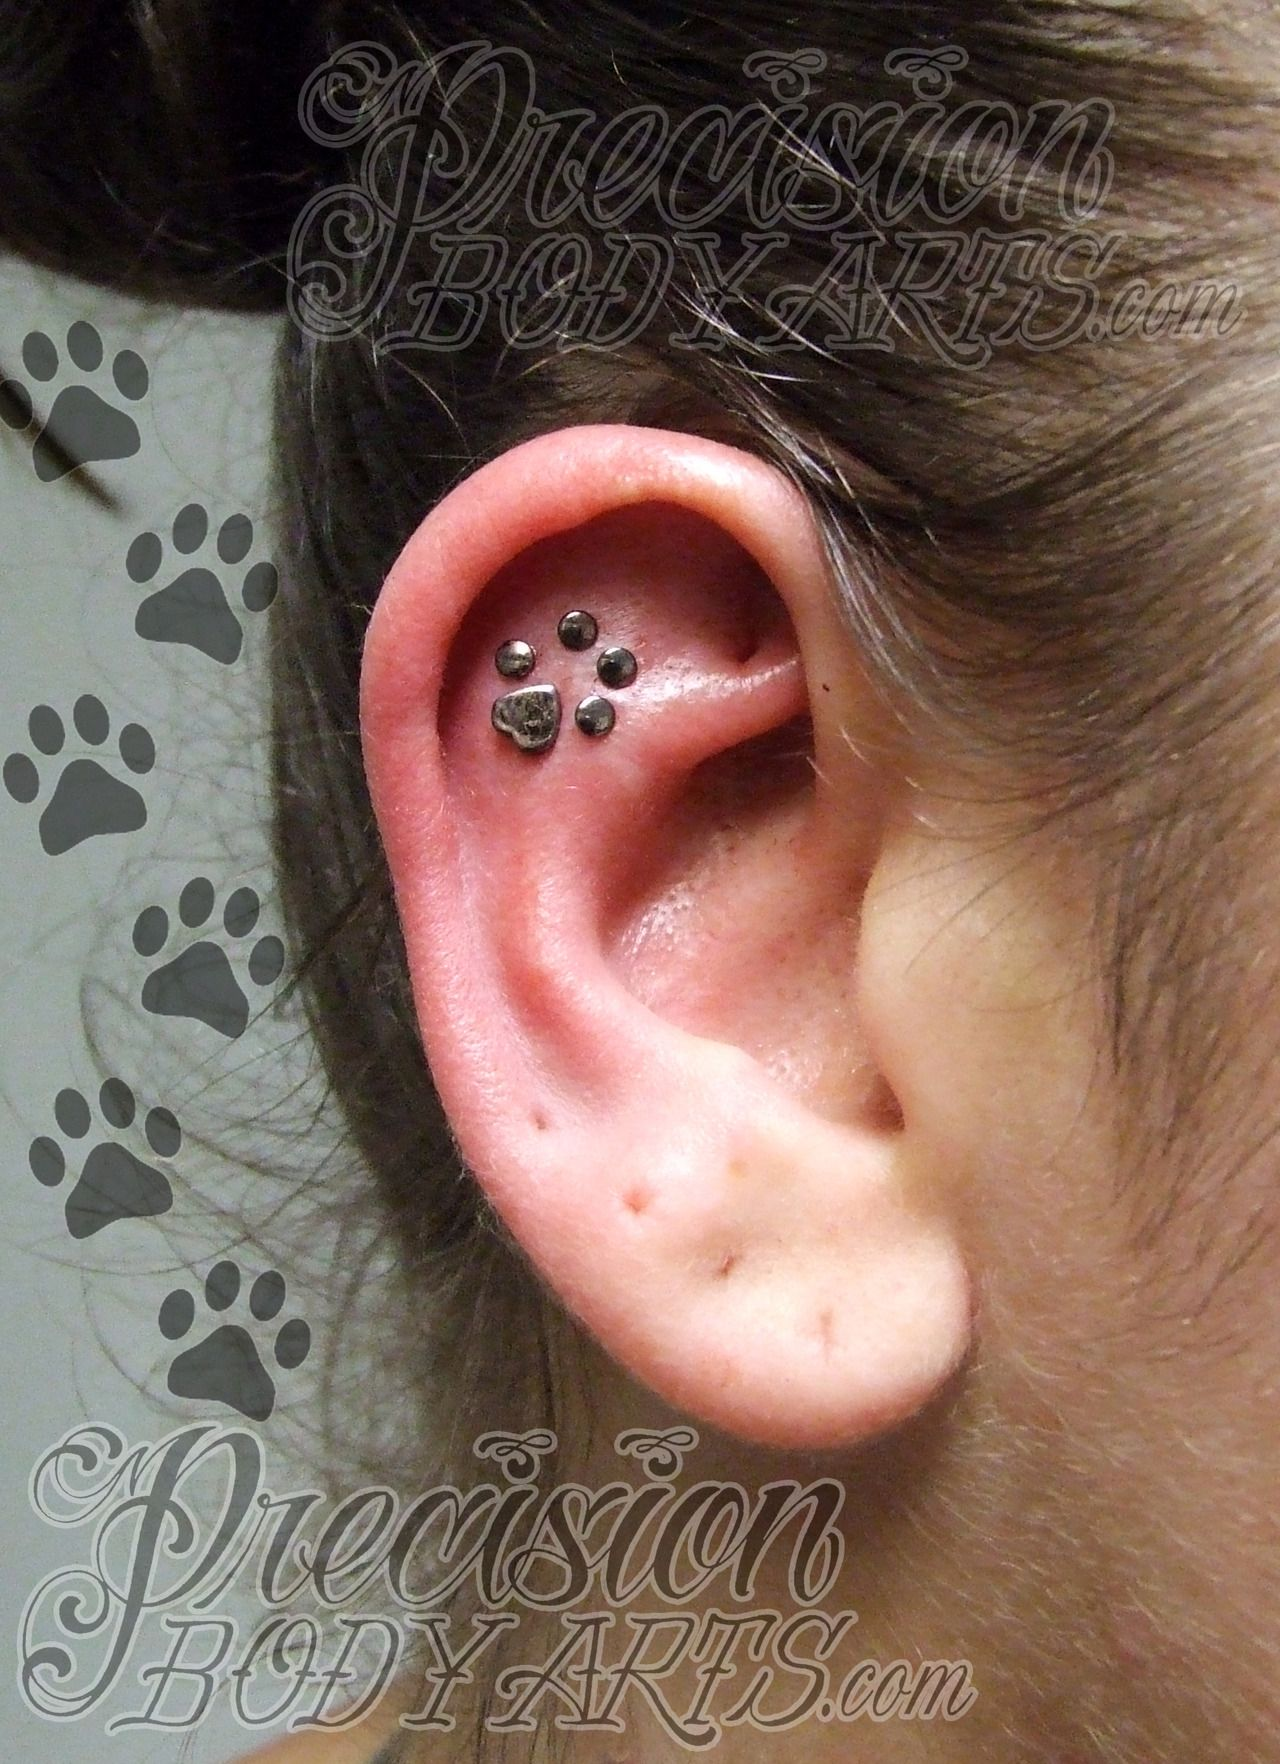 Paw Print Helix By Ryan Ouellette Precision Body Arts In Nashua Nh I Must Get This Done Cute Ear Piercings